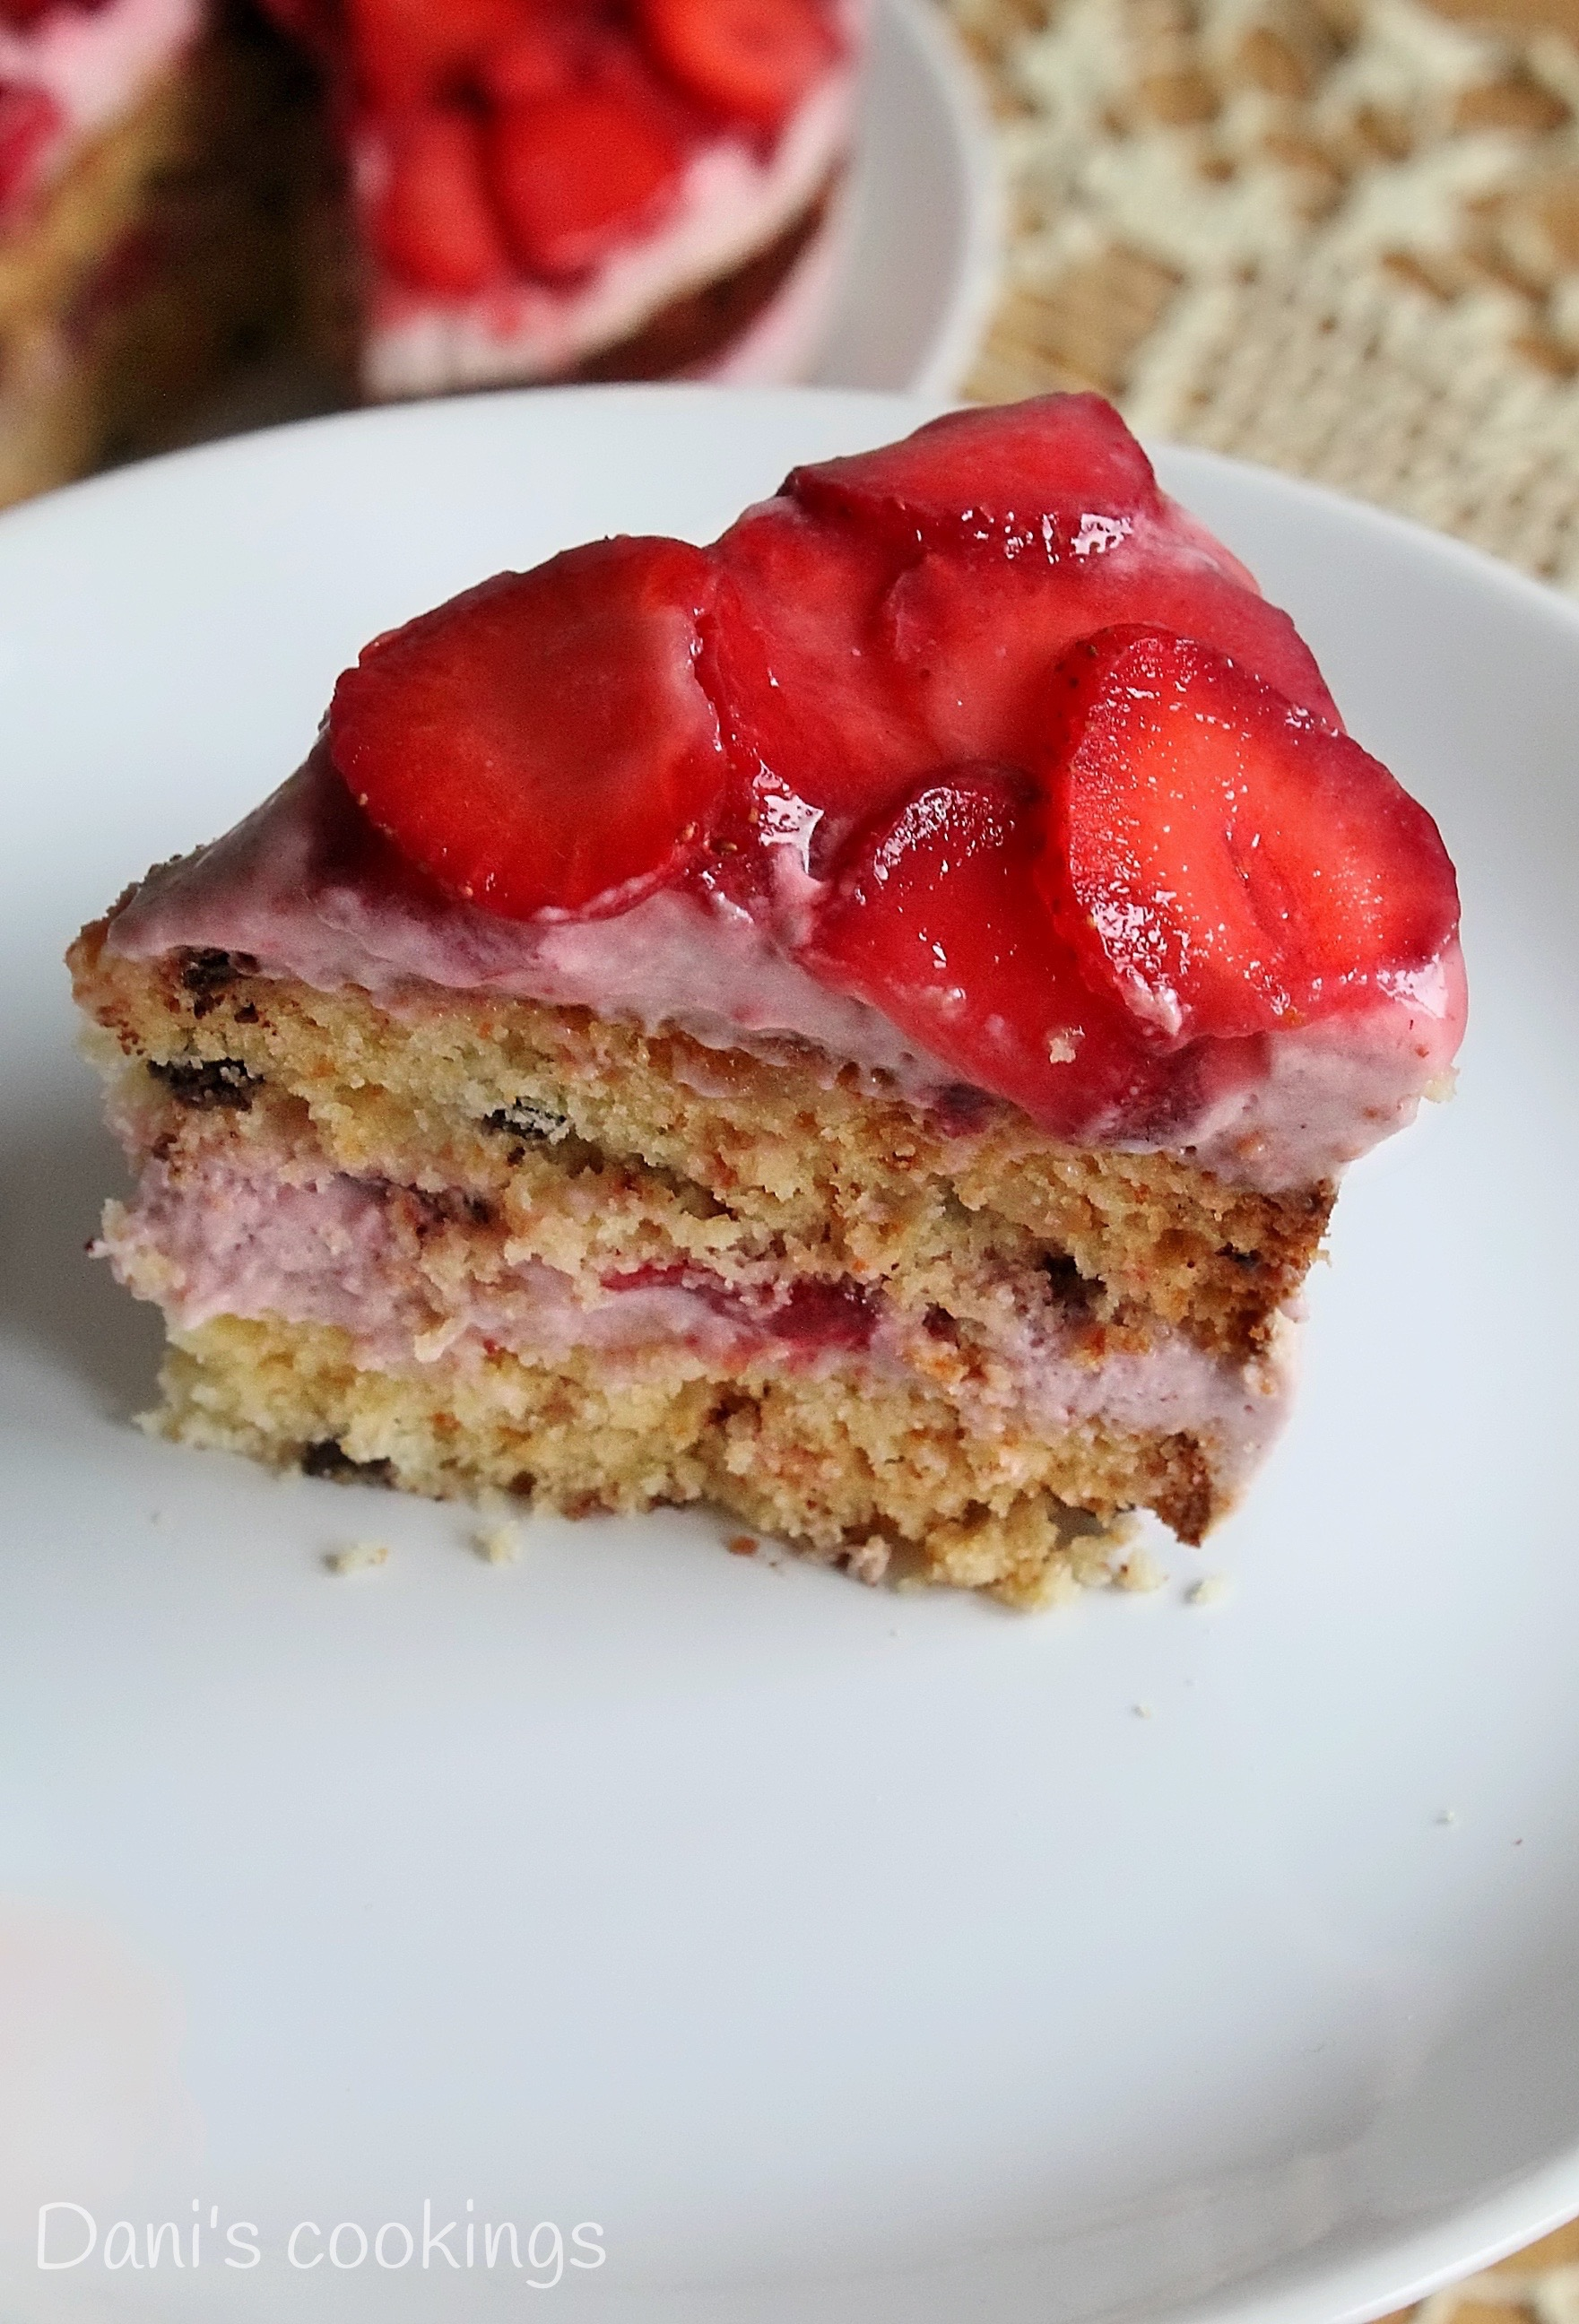 strawberry & citrus cake - daniscookings.wordpress.com